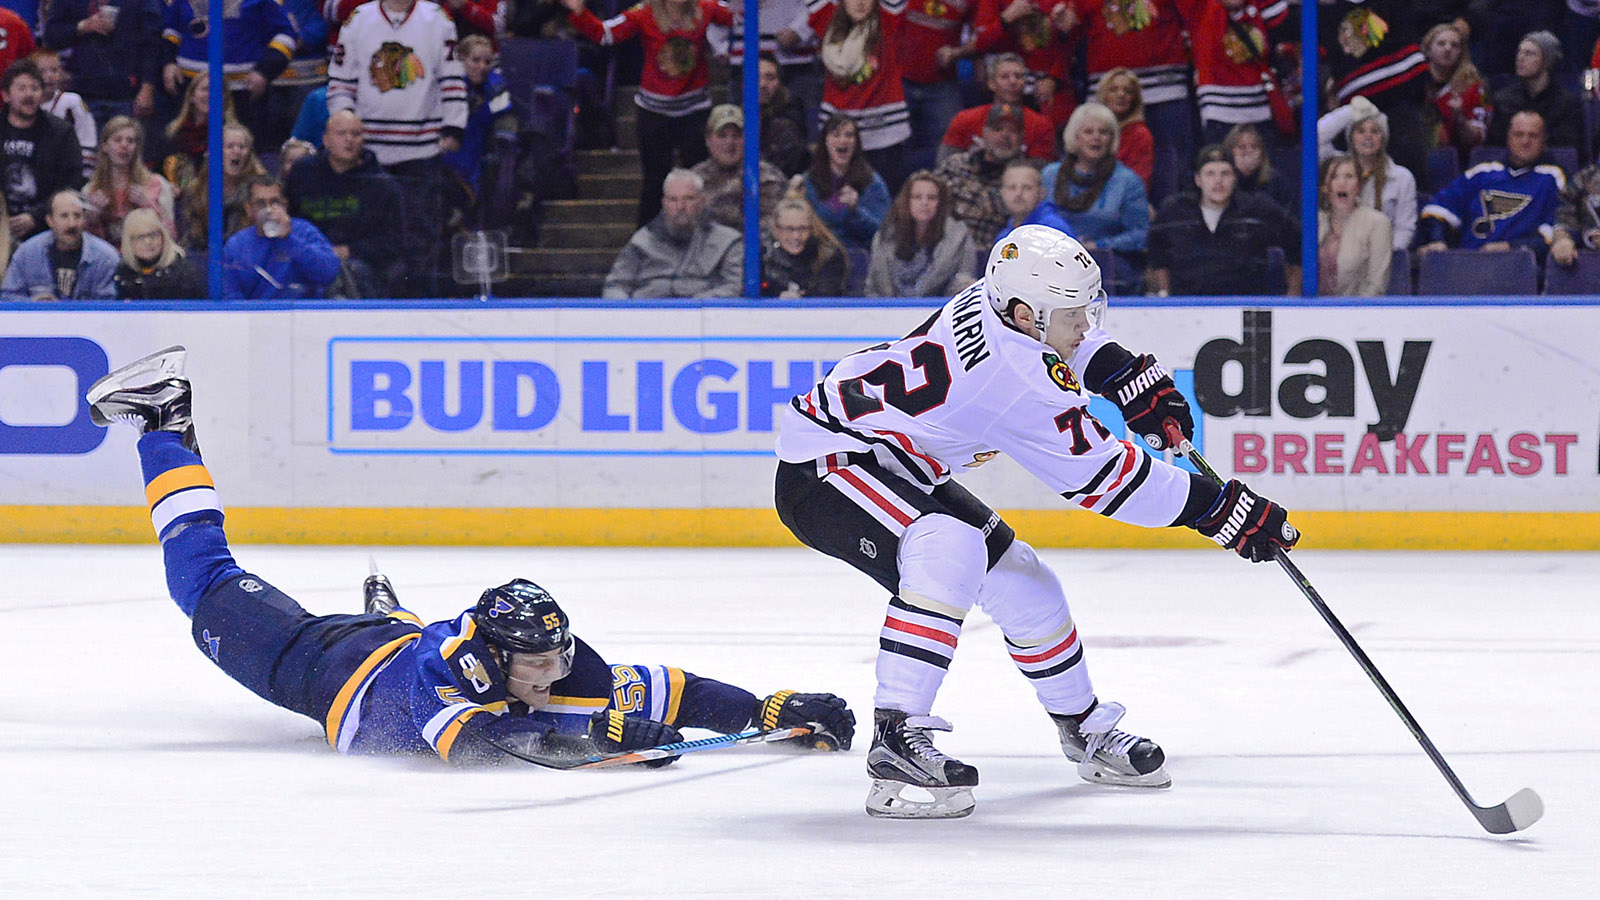 Blues fall 6-4 in intense battle with Blackhawks